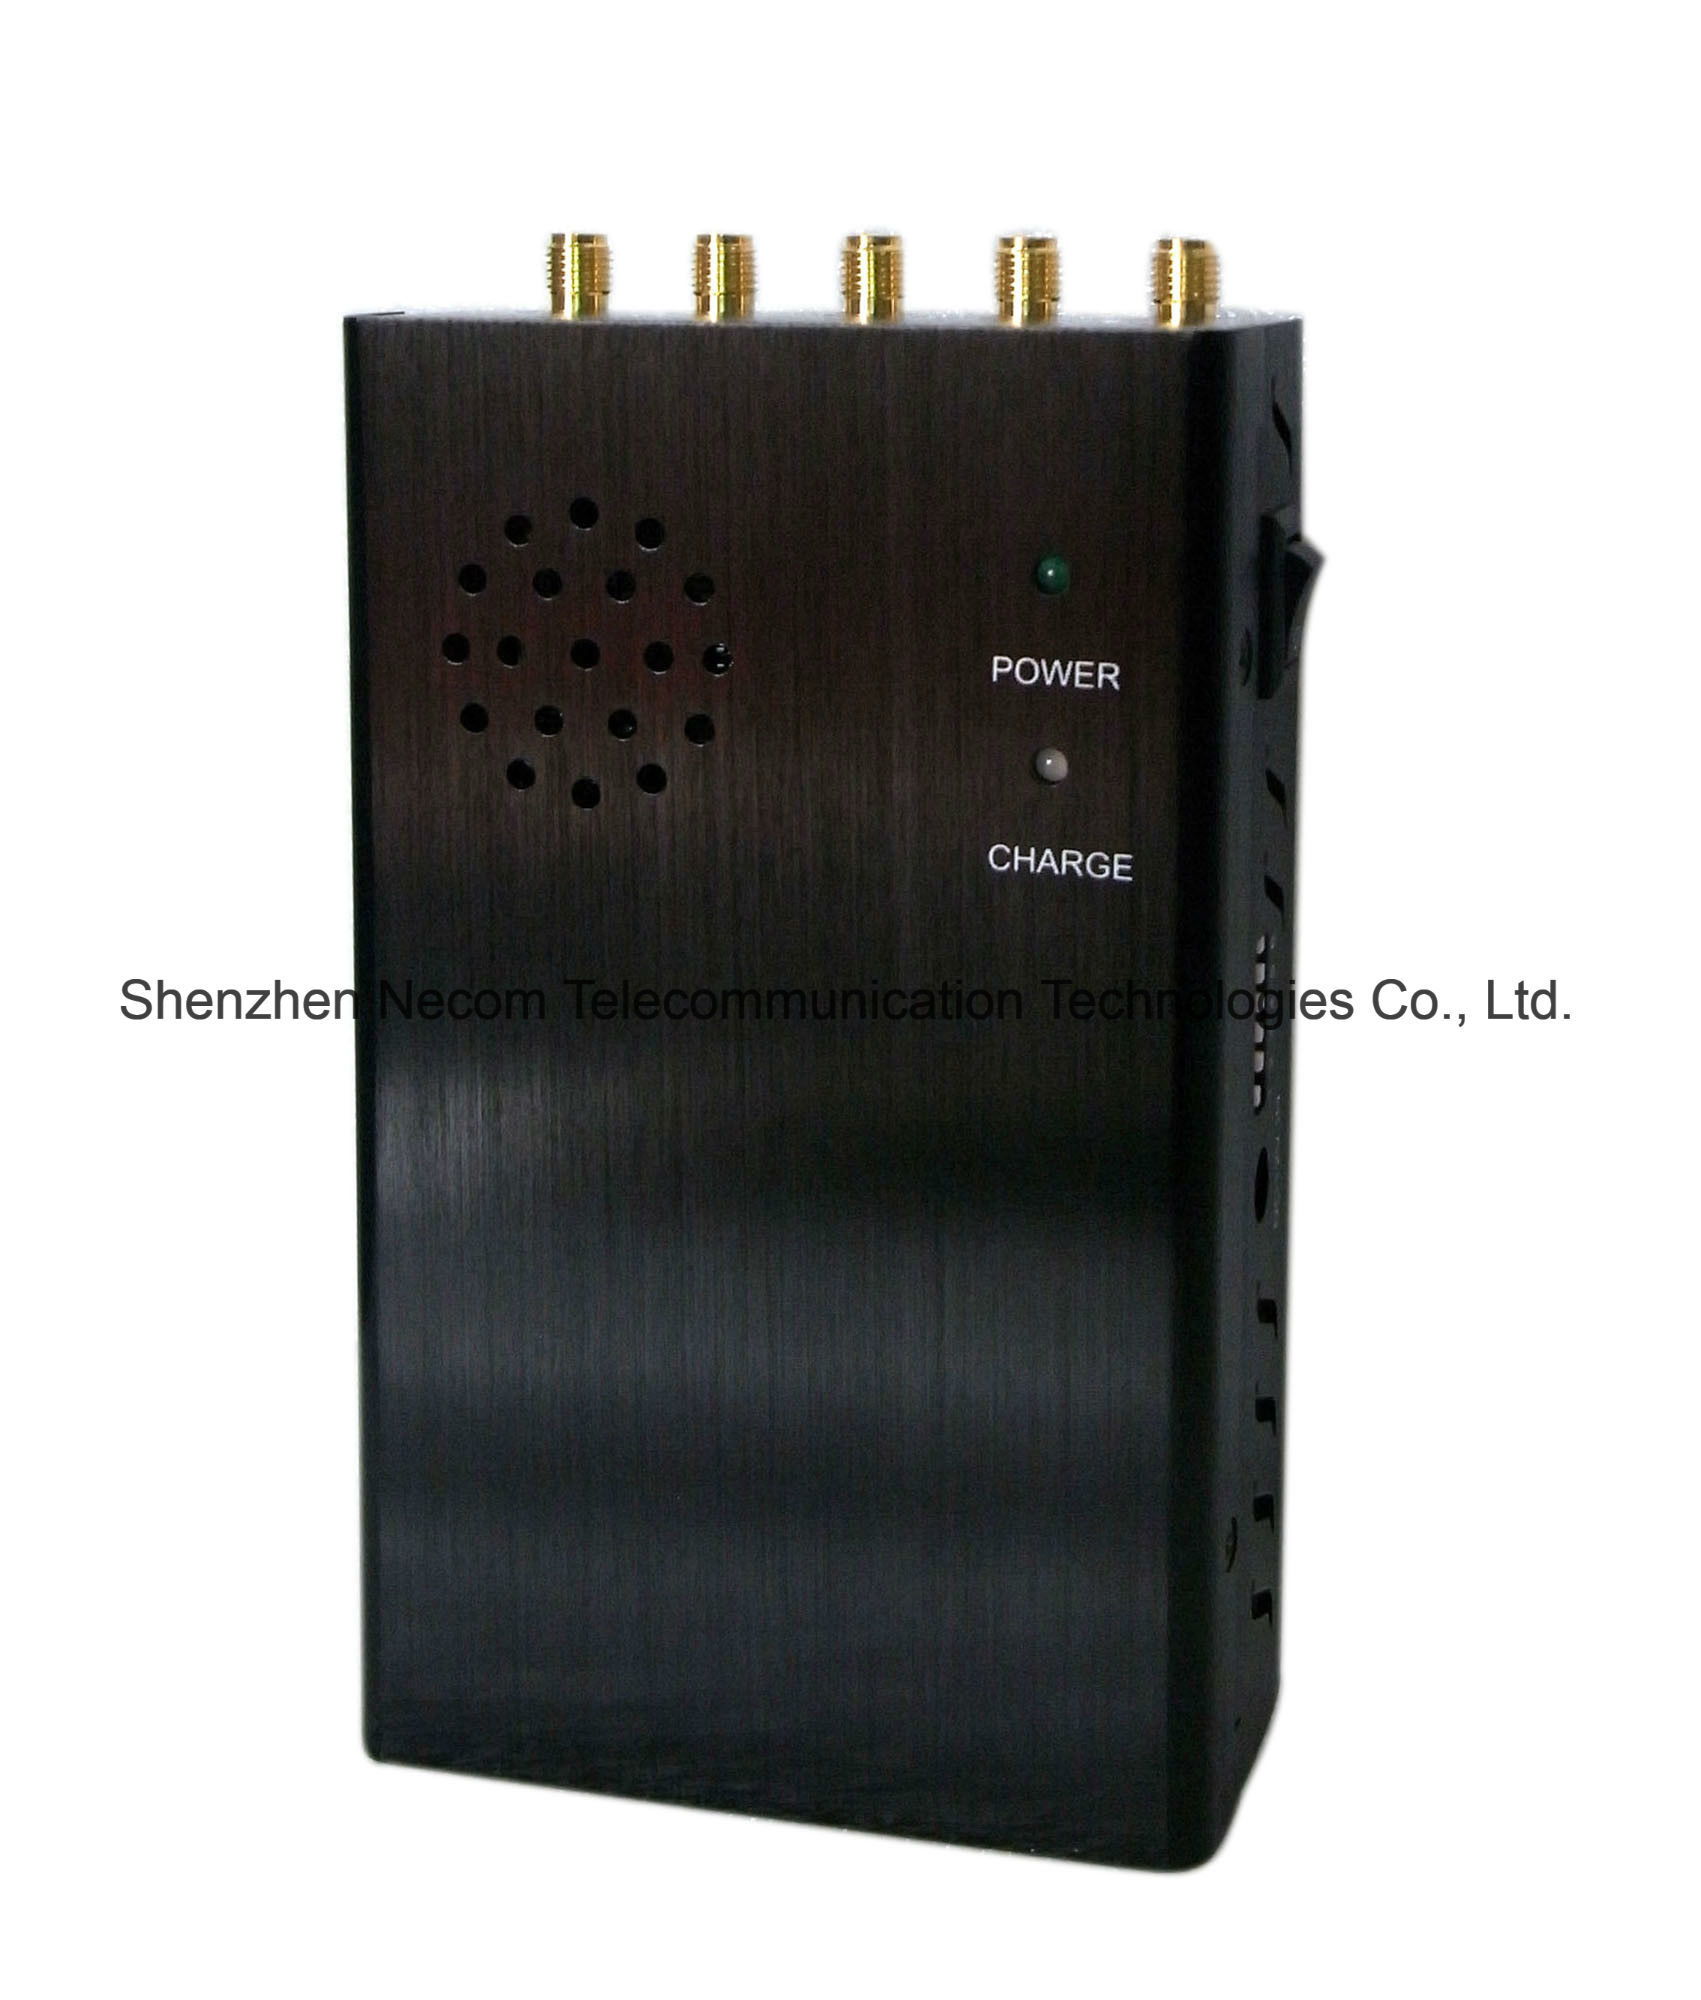 uses of mobile phone jammer - GPS Car Tracker Blocker, Made in China Small-Size GPS Car Tracker Blocker, Handheld Cell Phone GPS Jammer, Mobile Phone Jammer, Cellular Signal GSM Blocker - China 5 Band Signal Blockers, Five Antennas Jammers